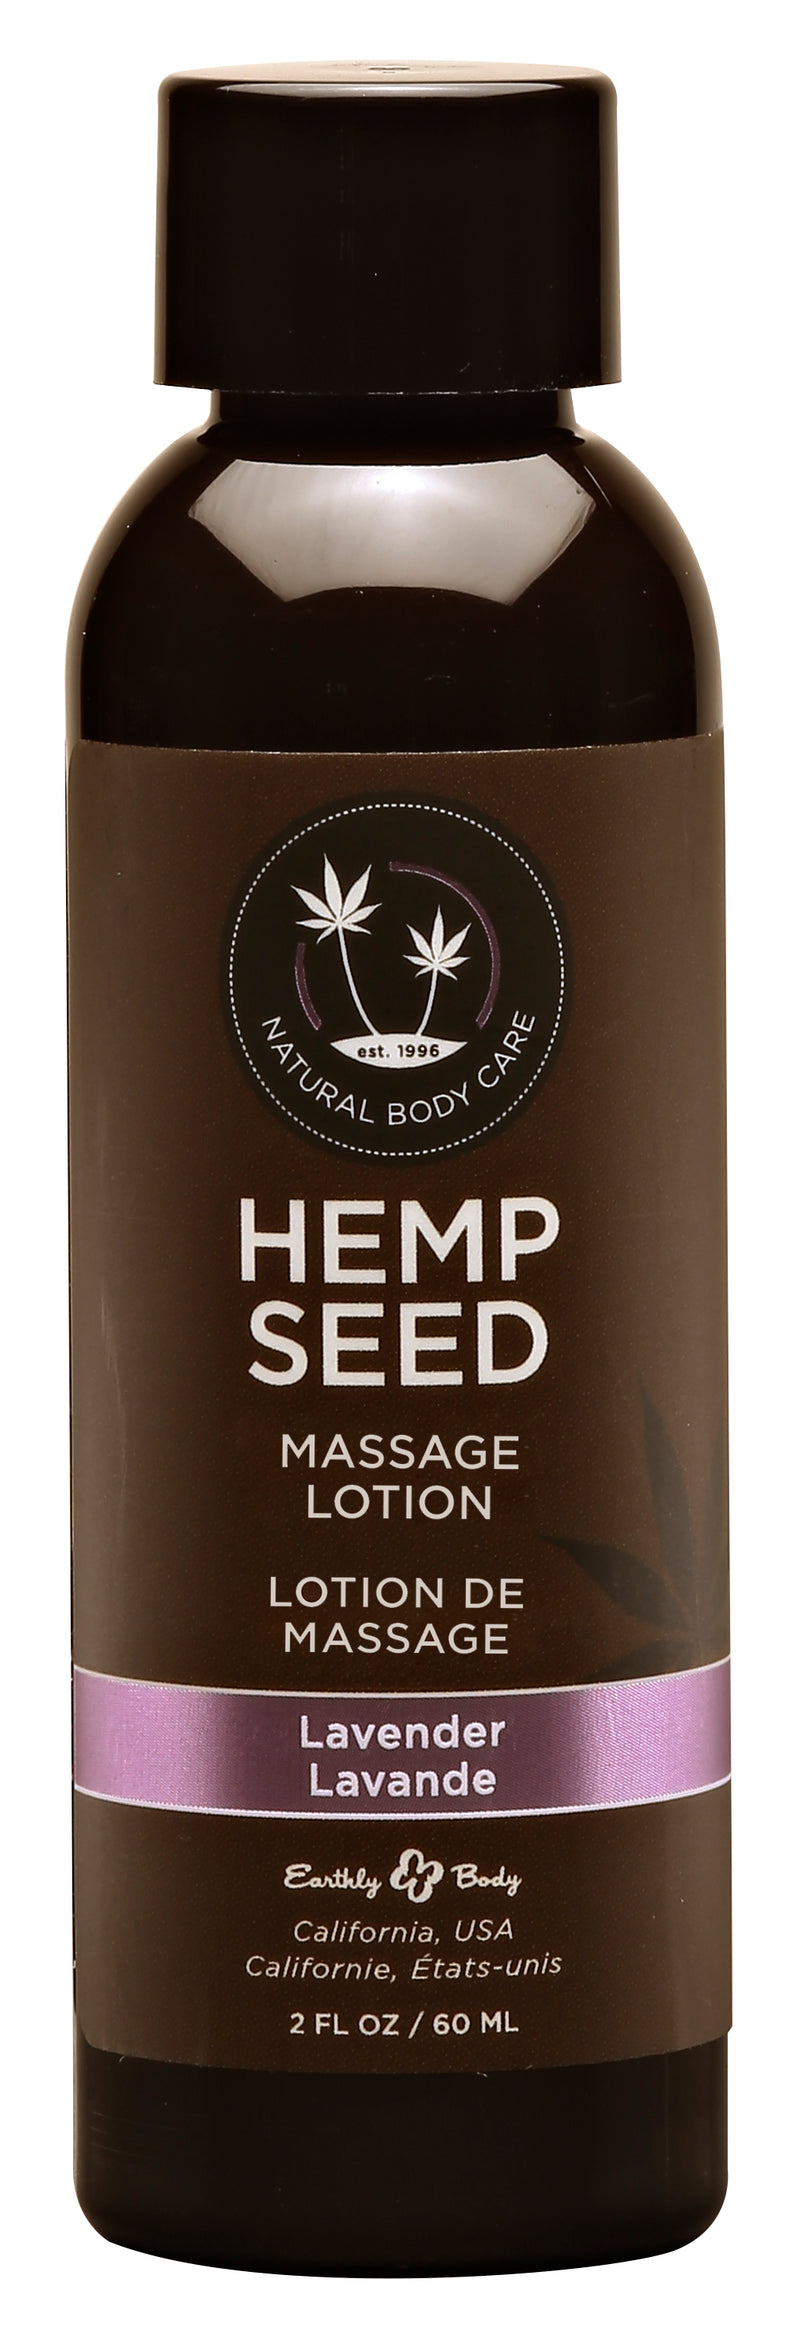 Hemp Seed Massage Lotion - Lavender - 2 Fl. Oz. / 60 ml EB-ML117